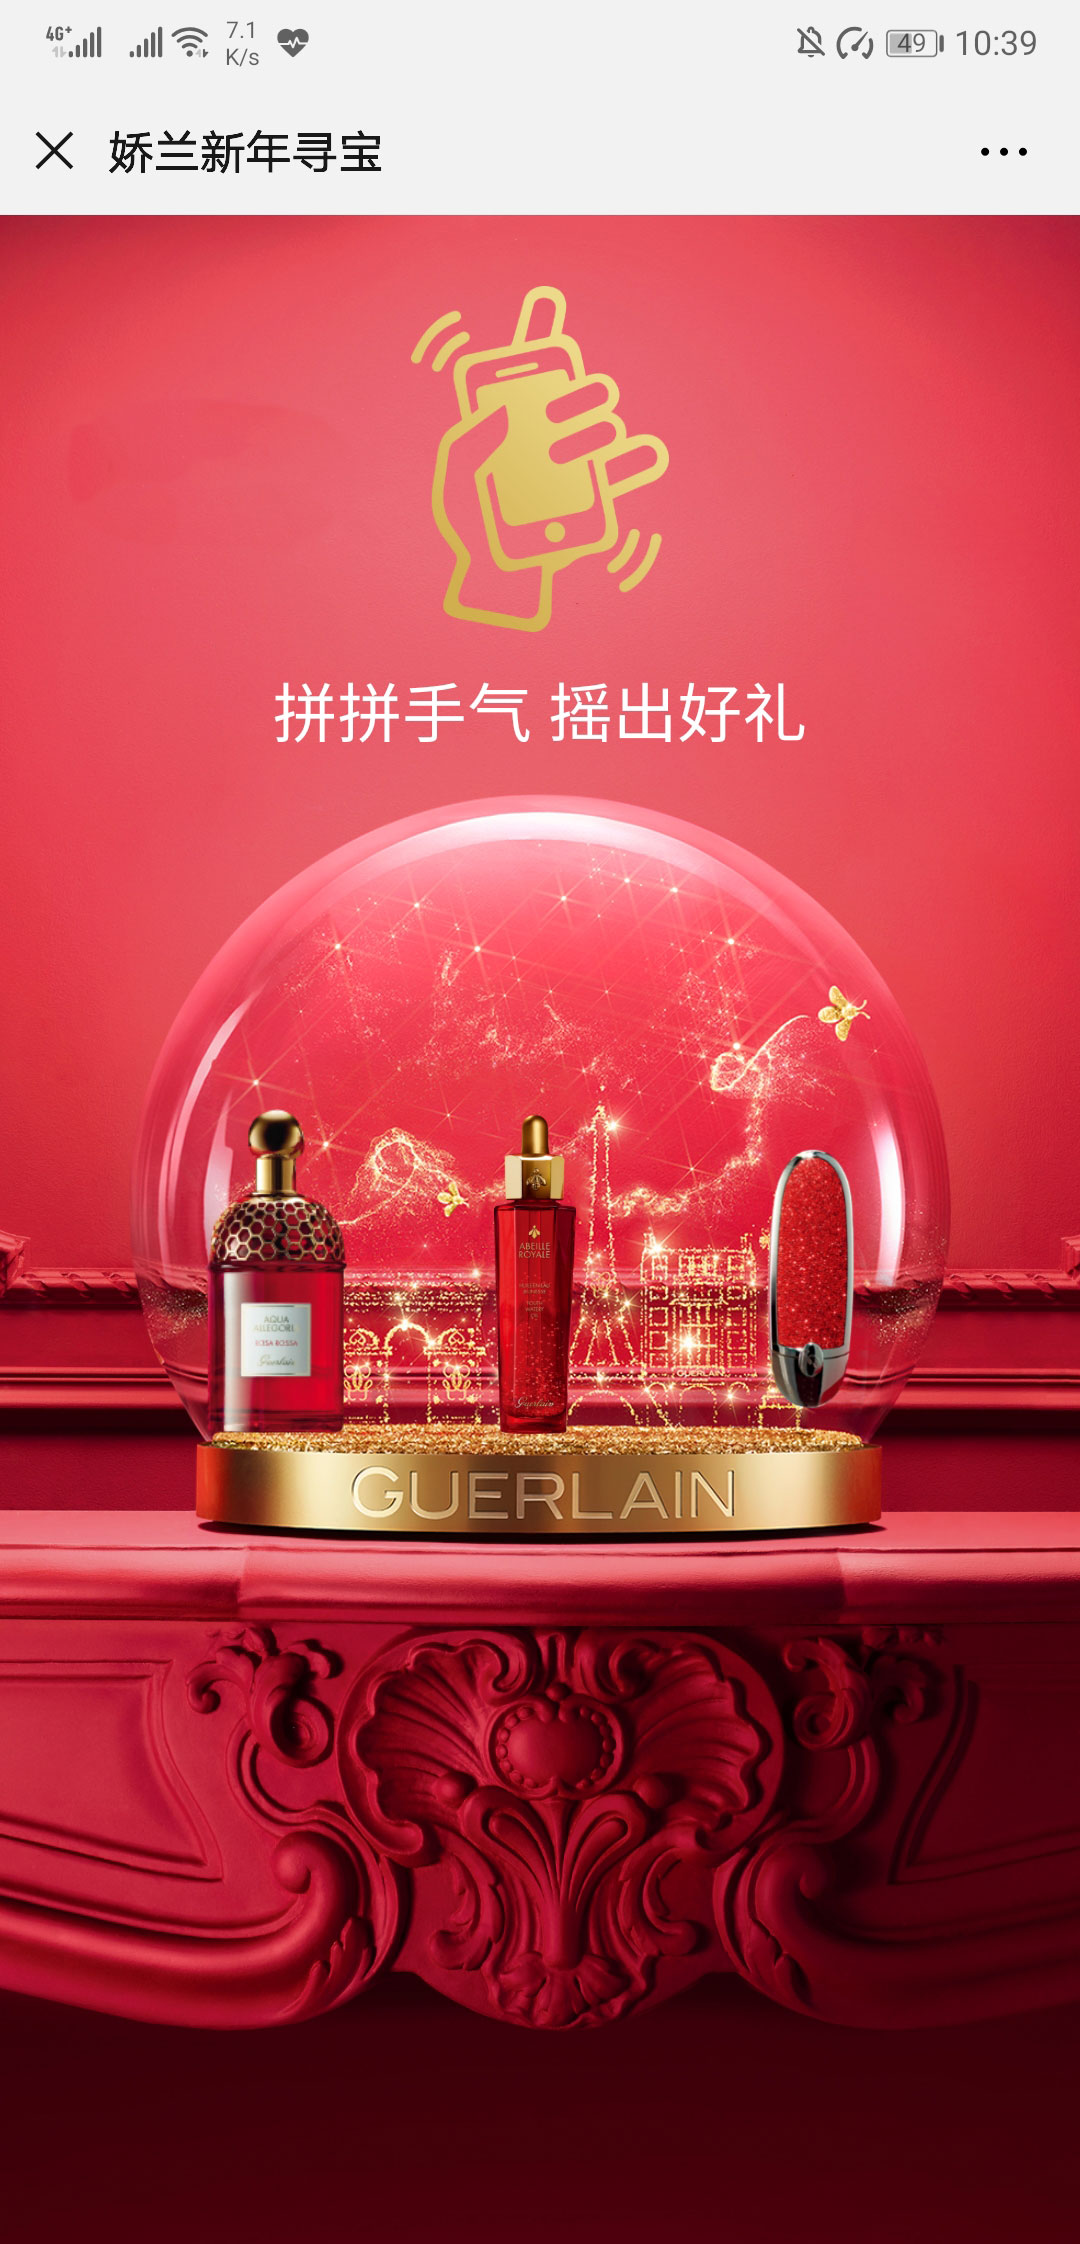 Guerlain CNY WeChat Shake campaign